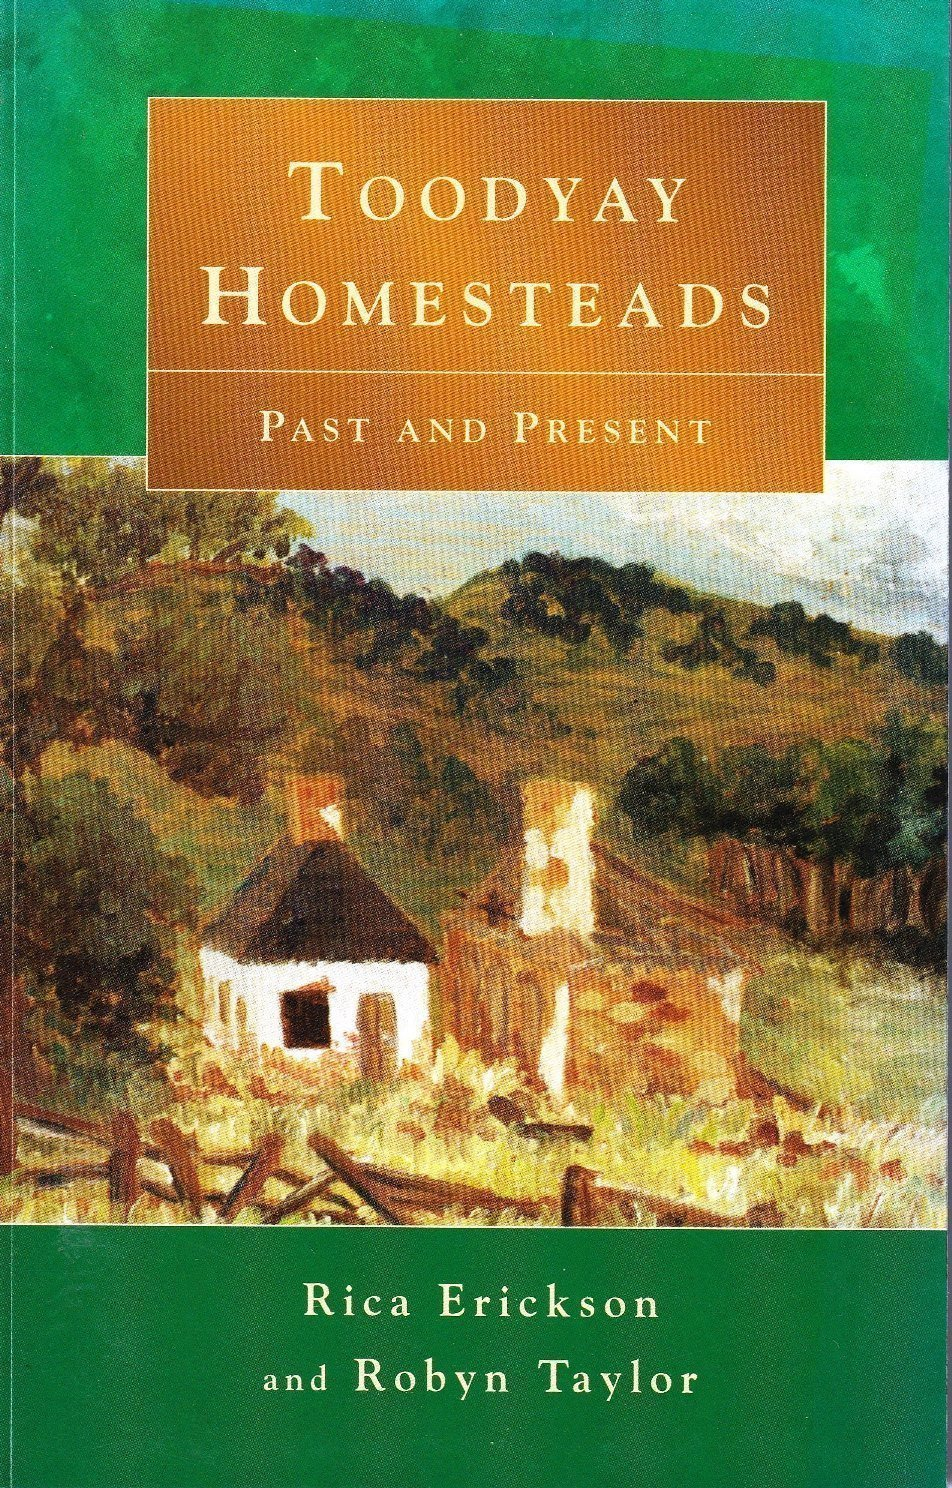 Toodyay homesteads, past and present